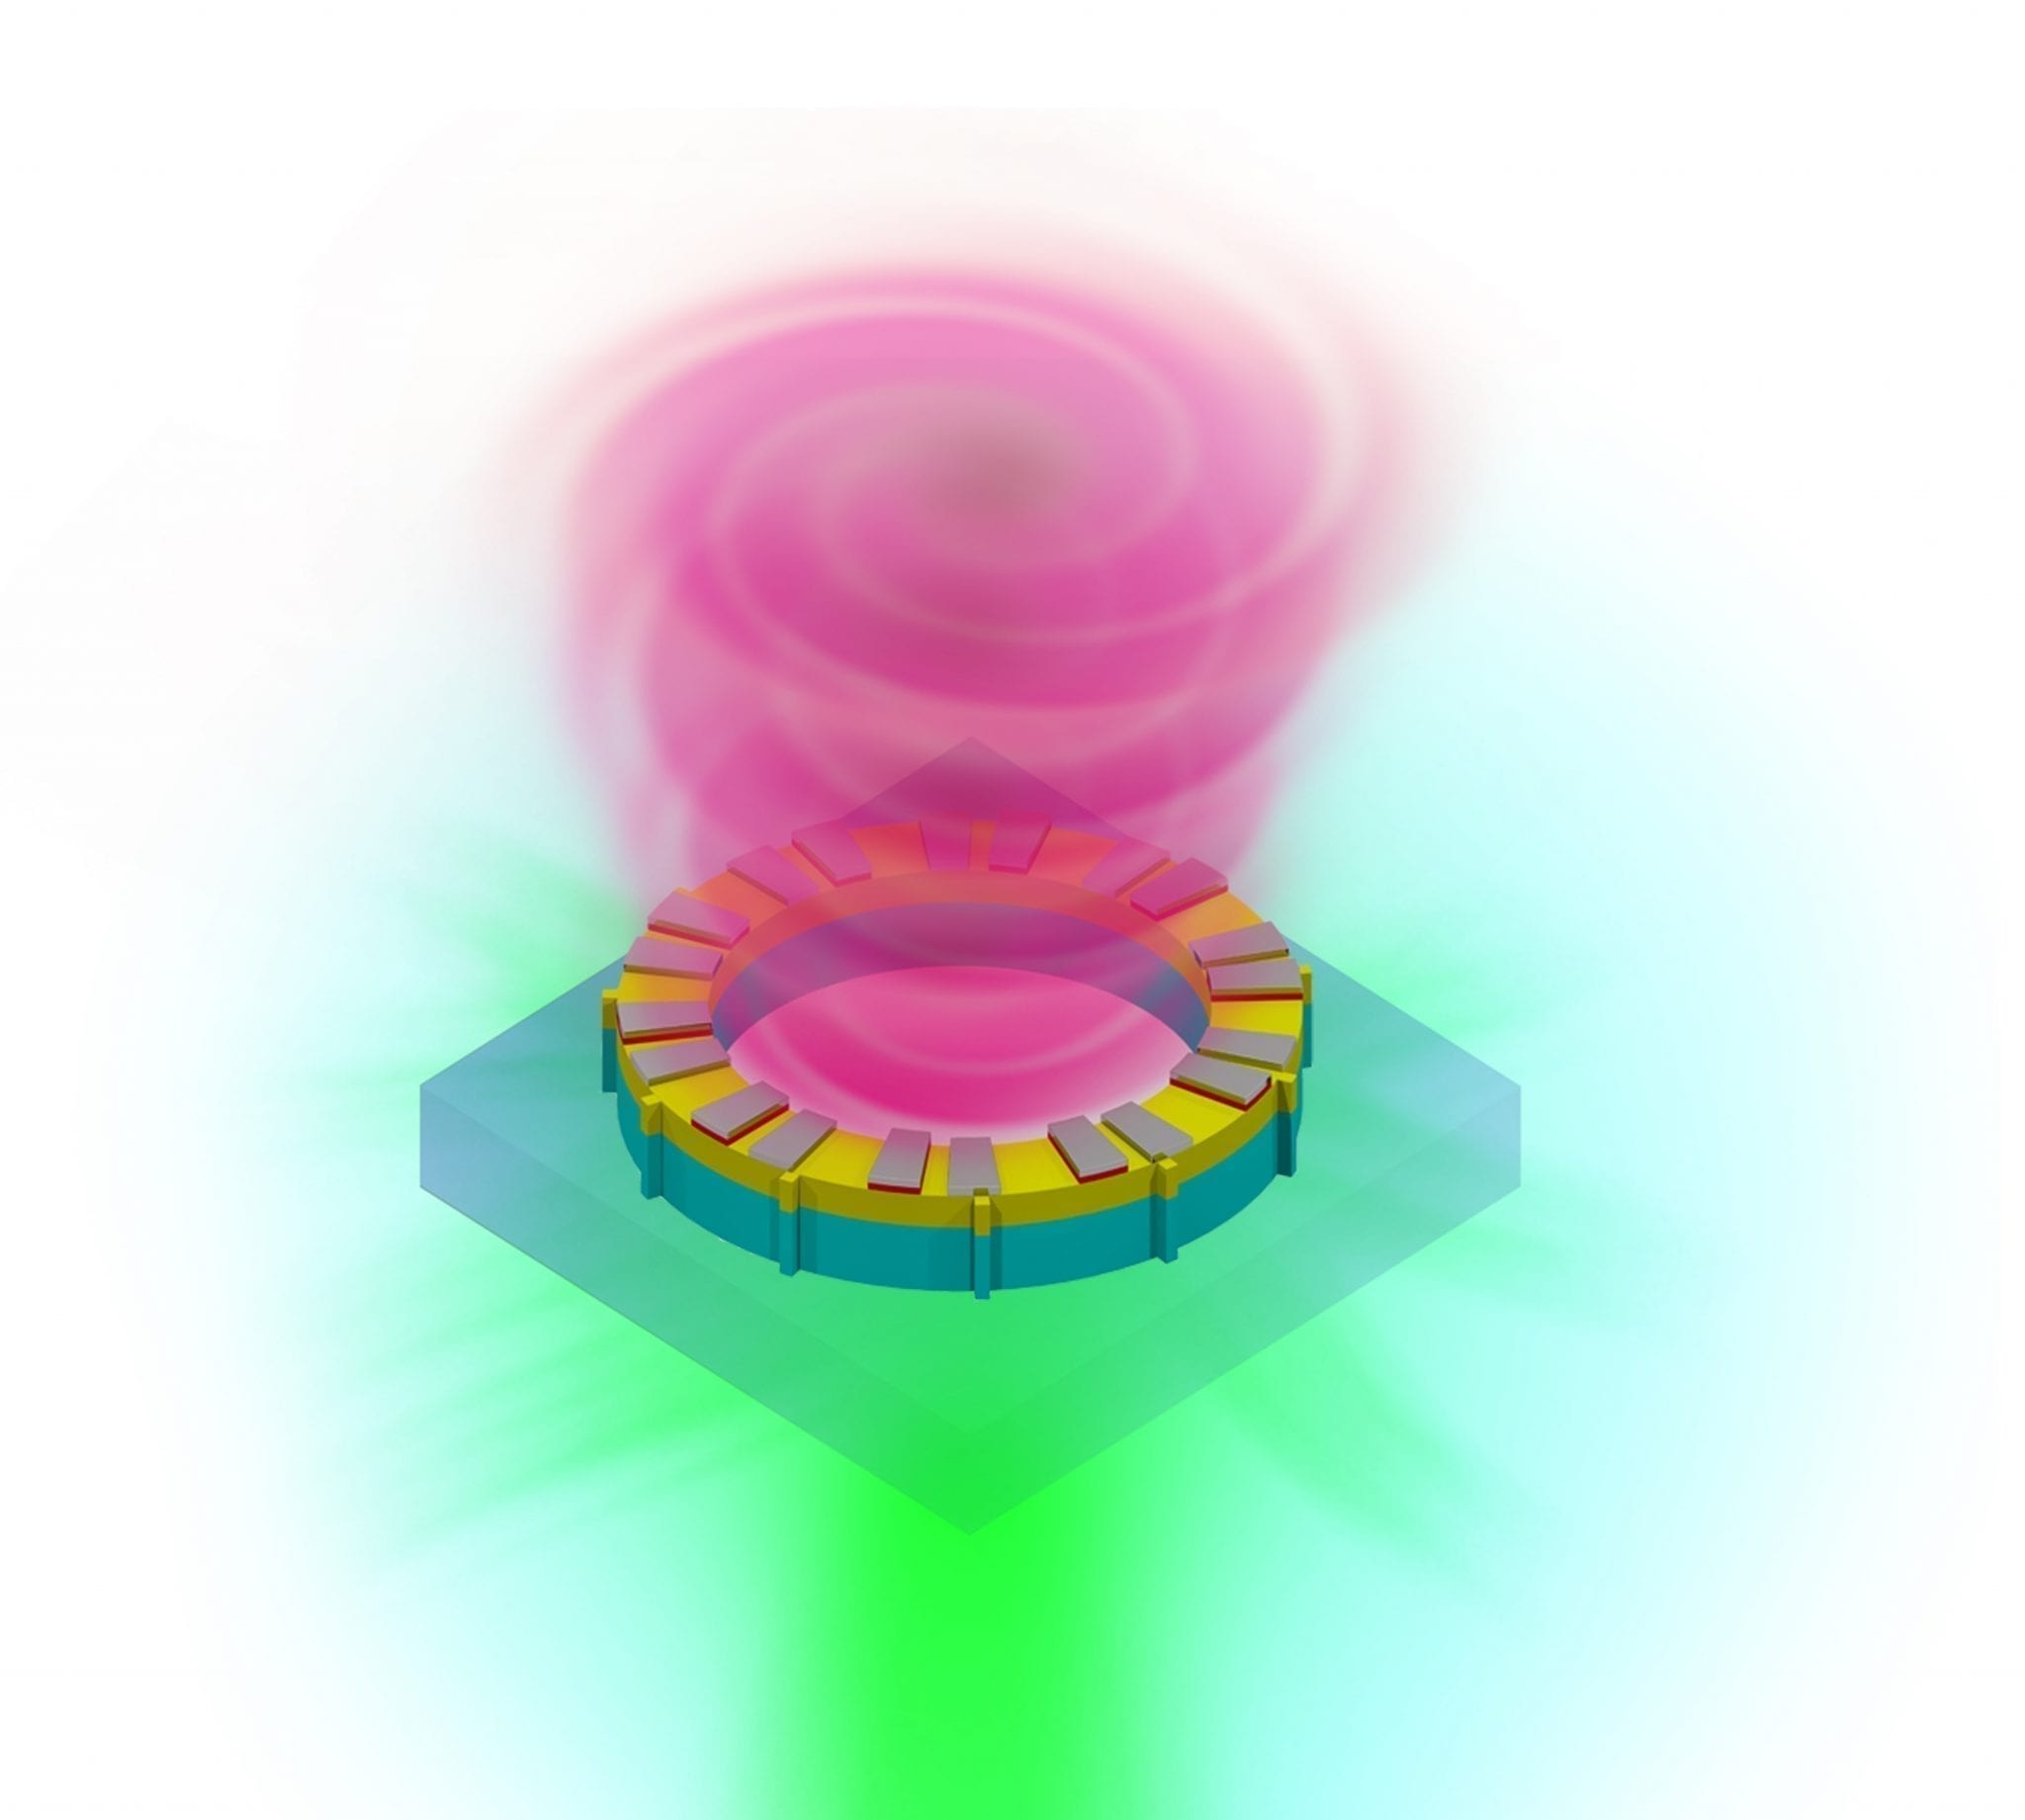 Vortex laser could boost computing power and information transfer rates tenfold